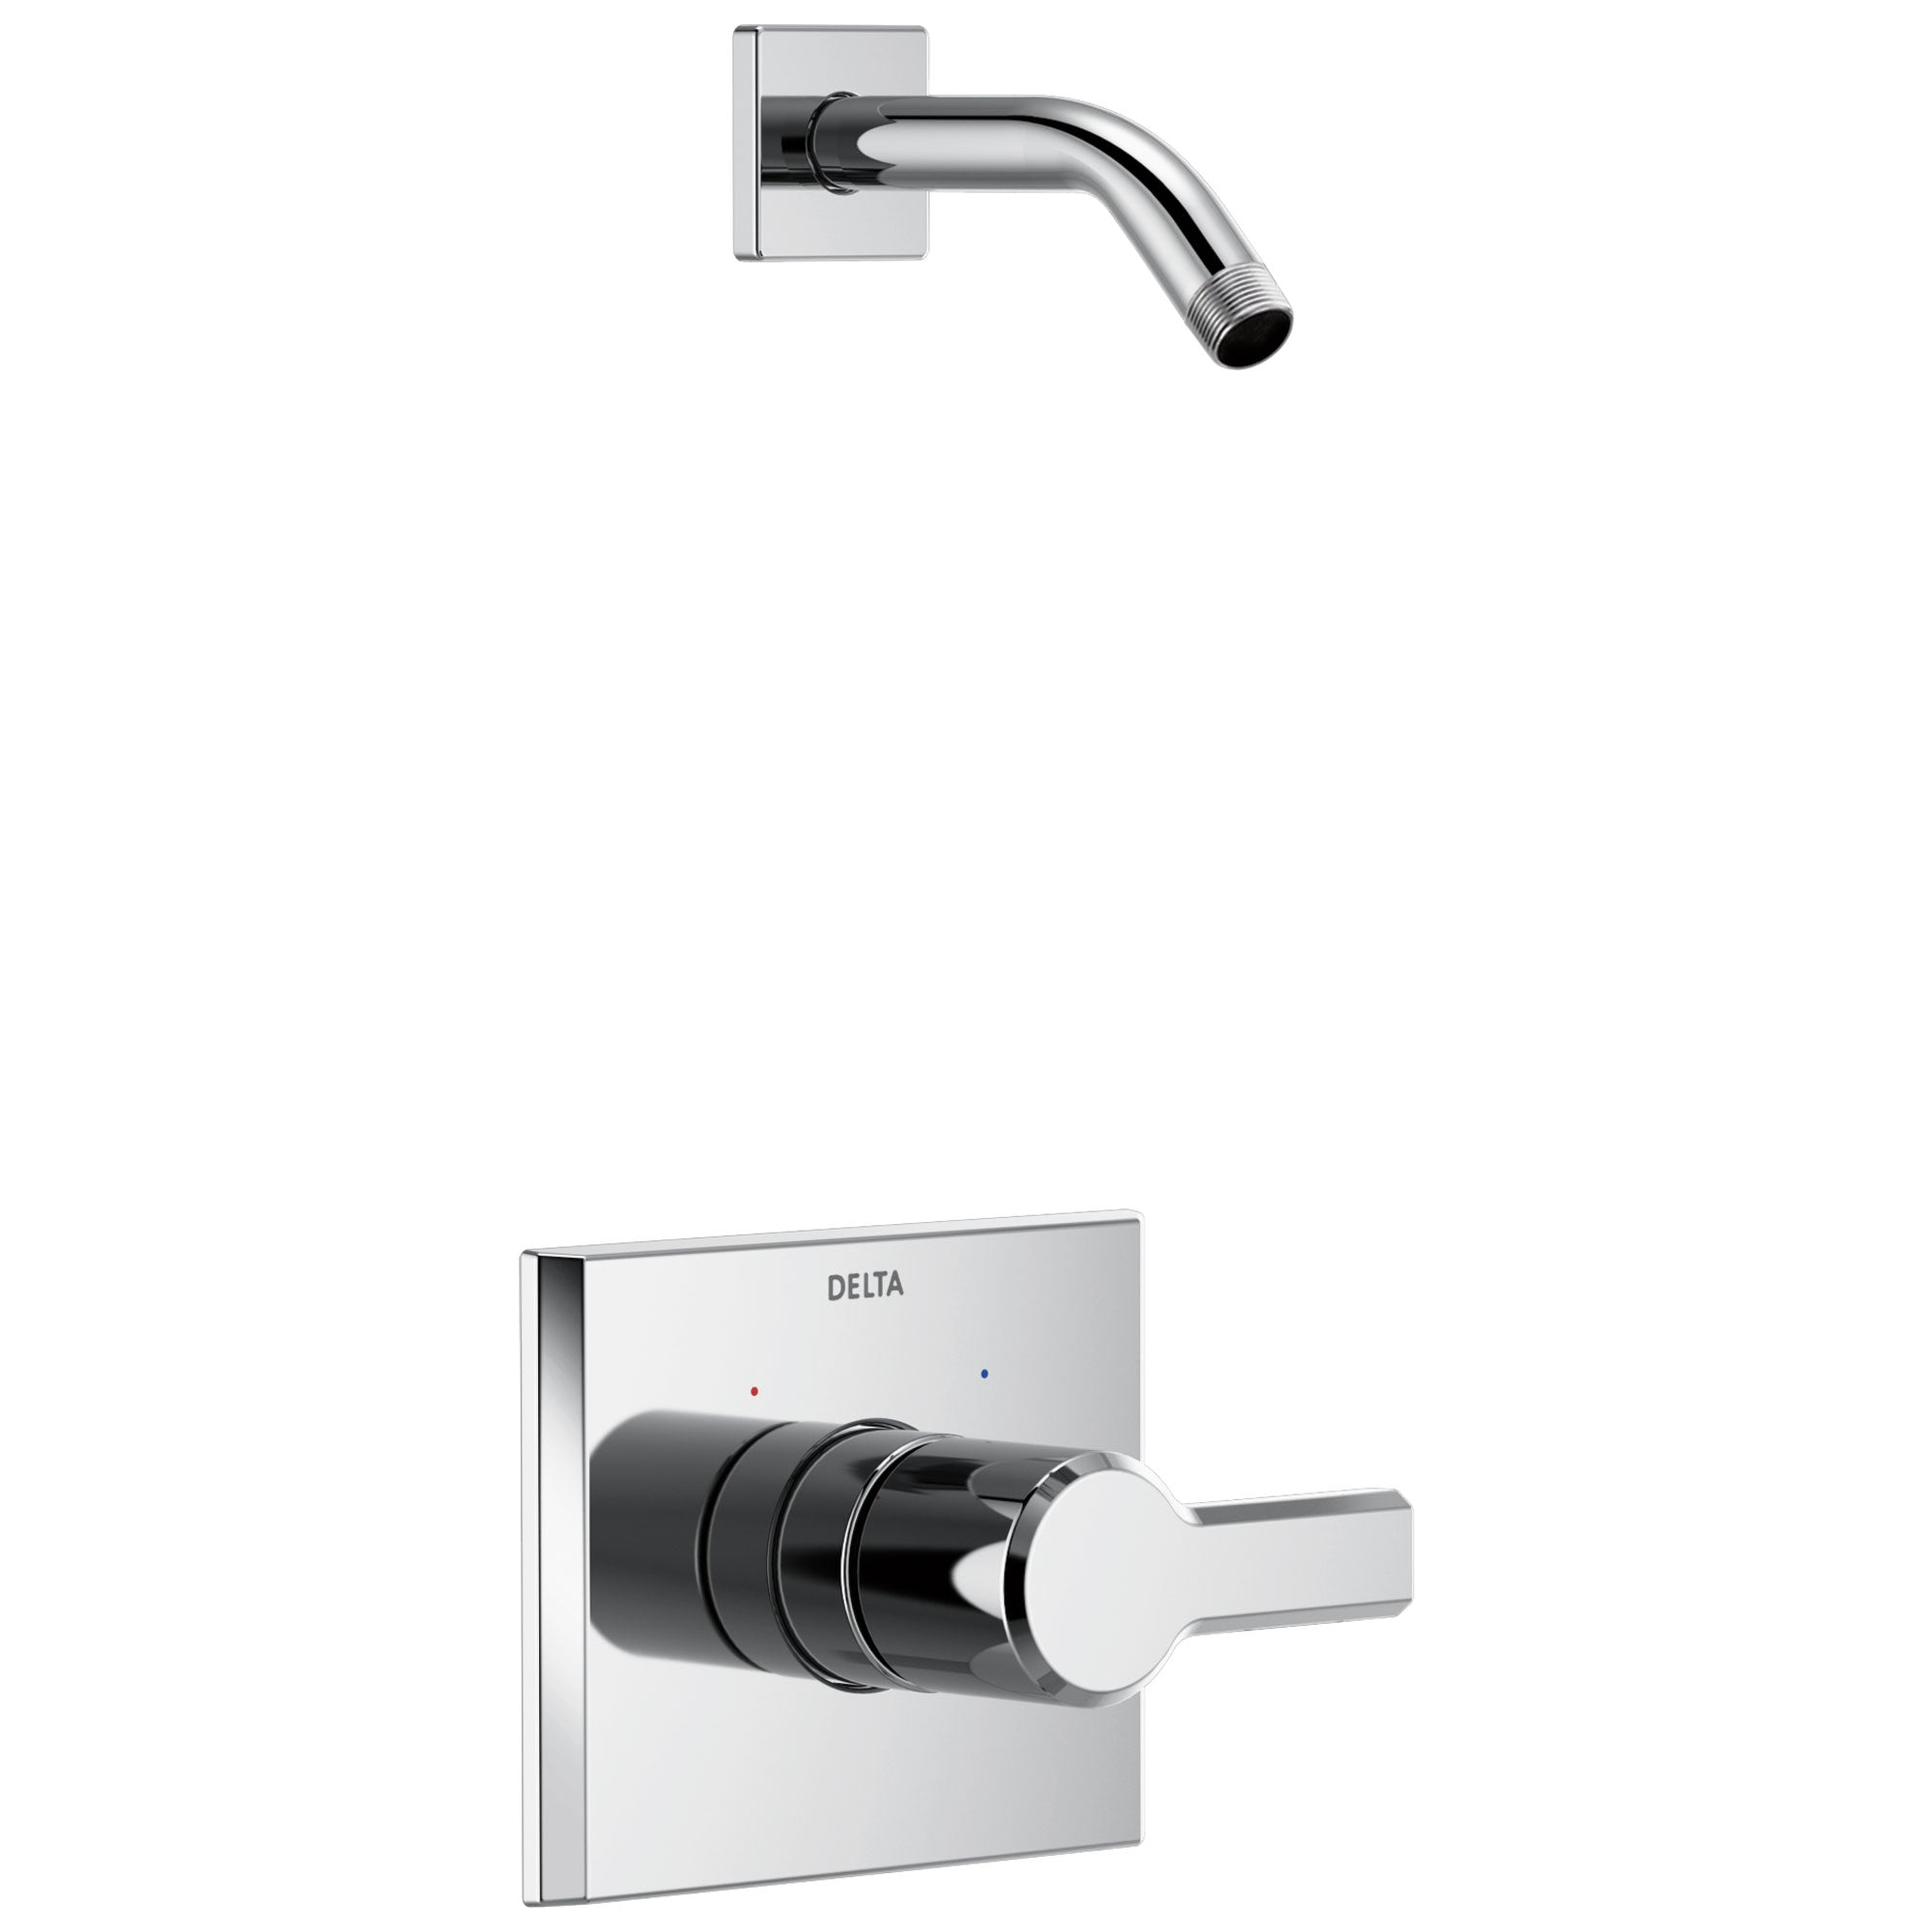 Delta Pivotal Chrome Finish Monitor 14 Series Shower only Faucet Less Showerhead Trim Kit (Requires Valve) DT14299LHD